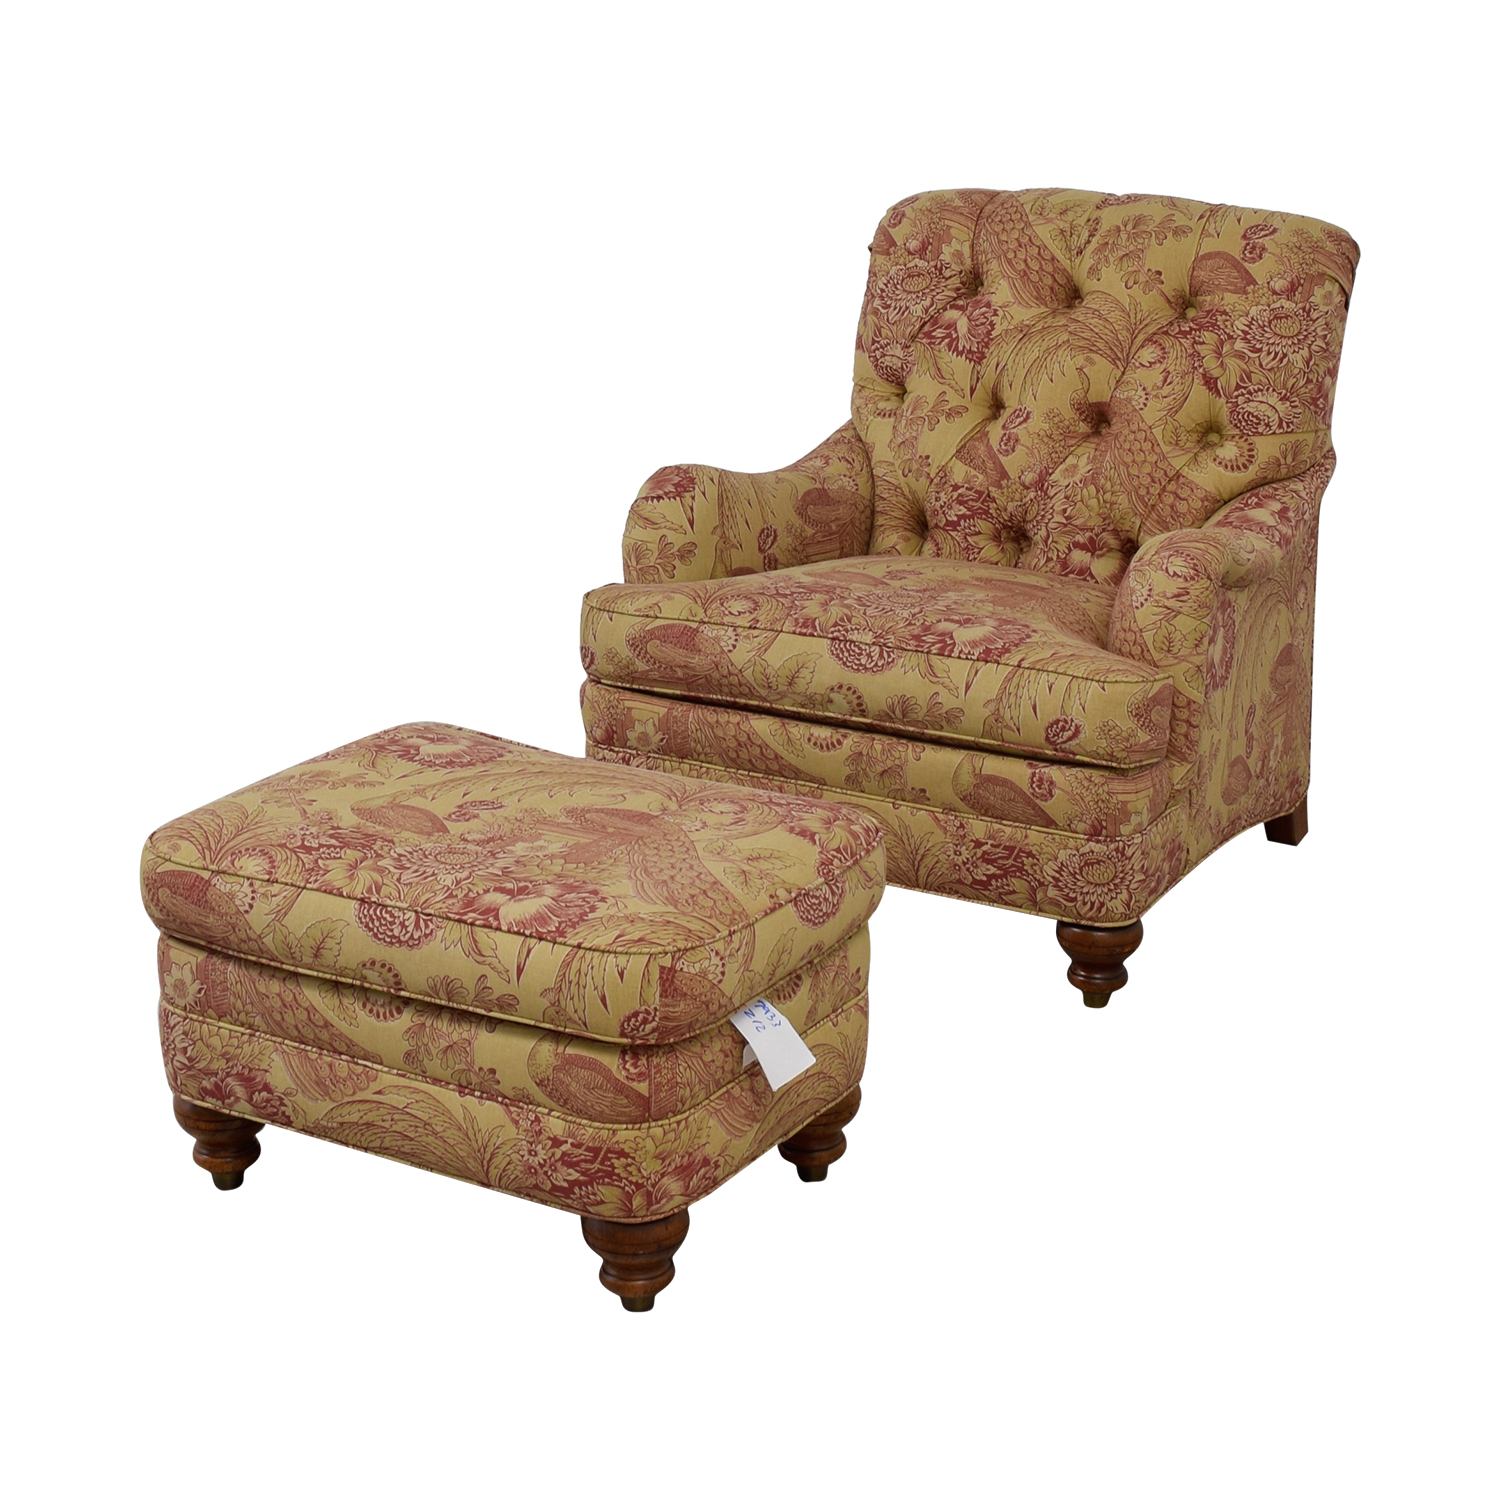 59 Off Ethan Allen Ethan Allen Mercer Beige And Red